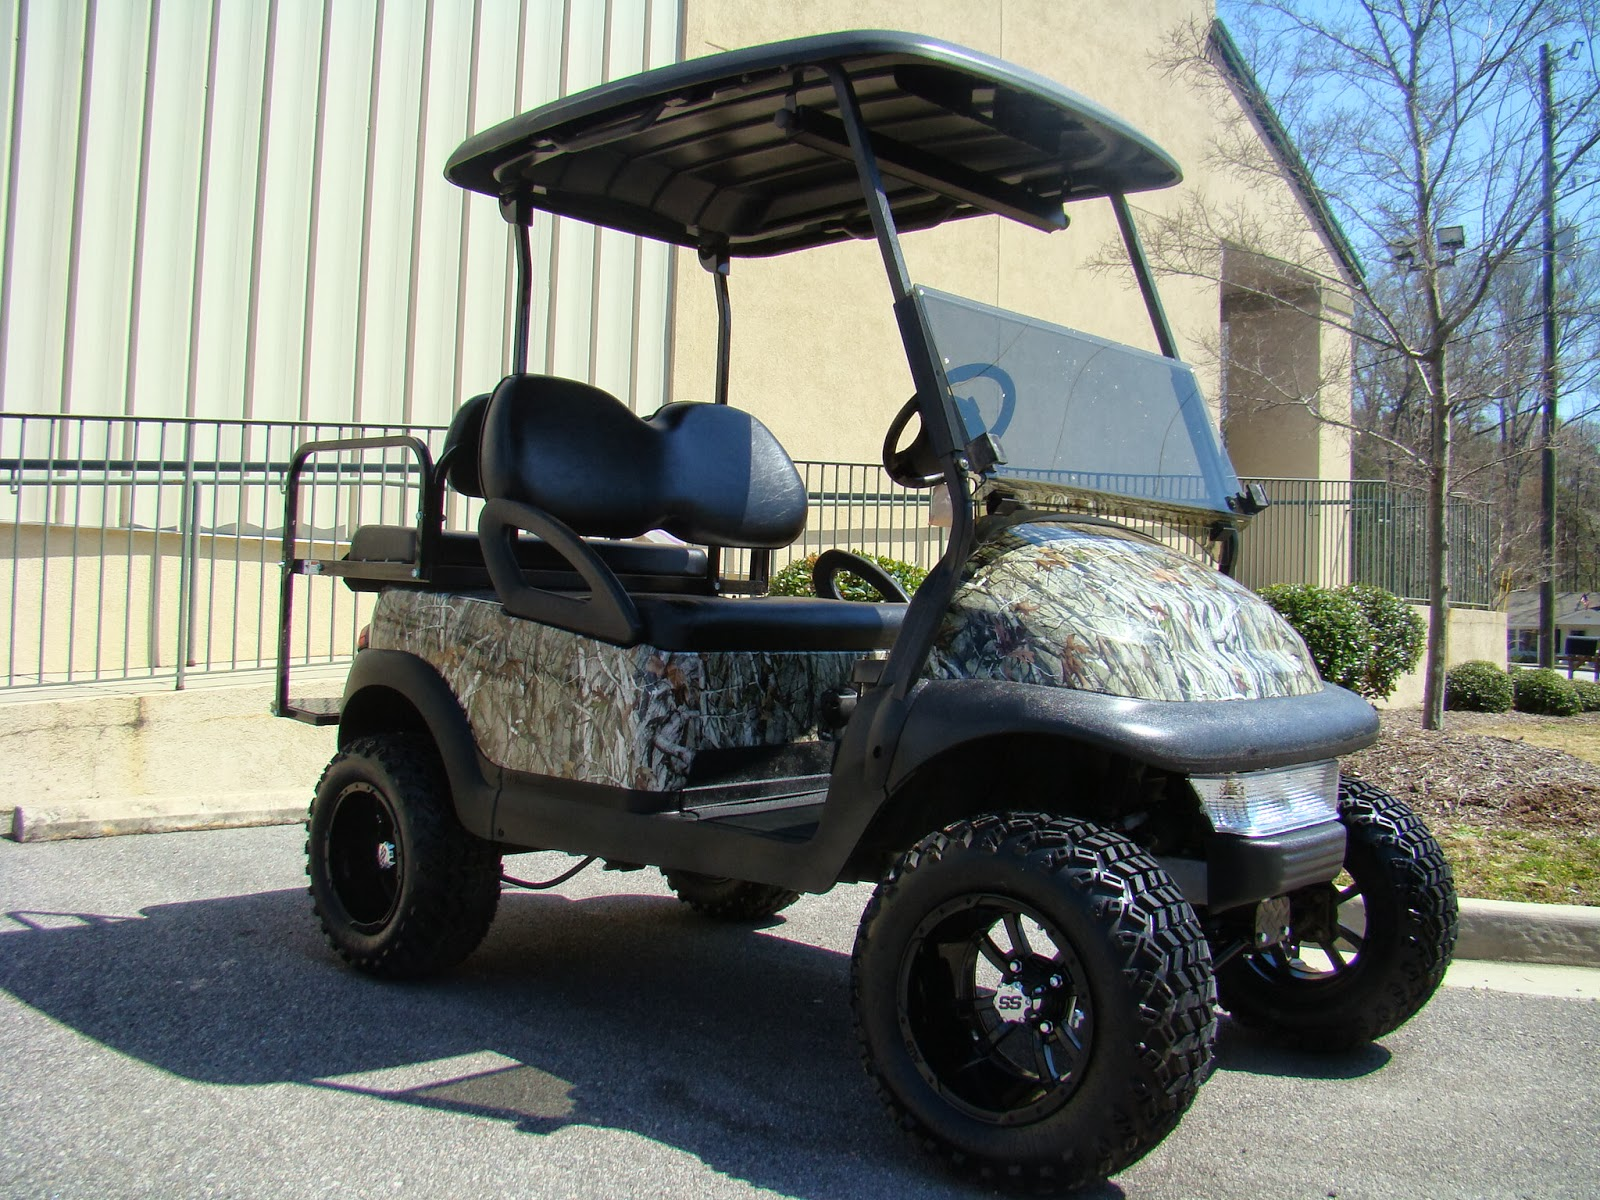 4wd Electric Golf Cart 2010 Club Car Precedent Wiring Diagram Images Of